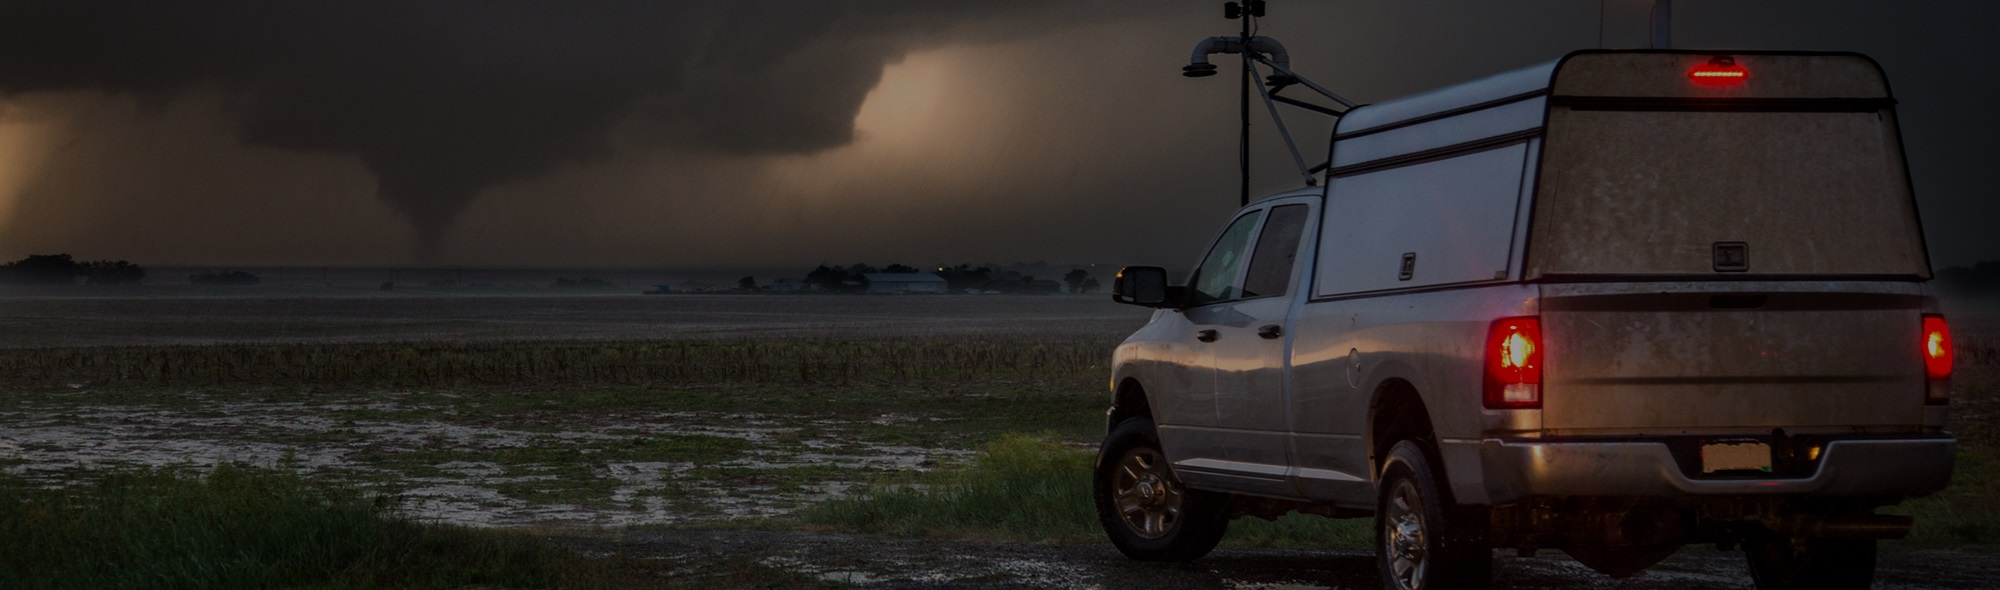 A truck parked on a gravel road as a tornado is approaching in the distance.